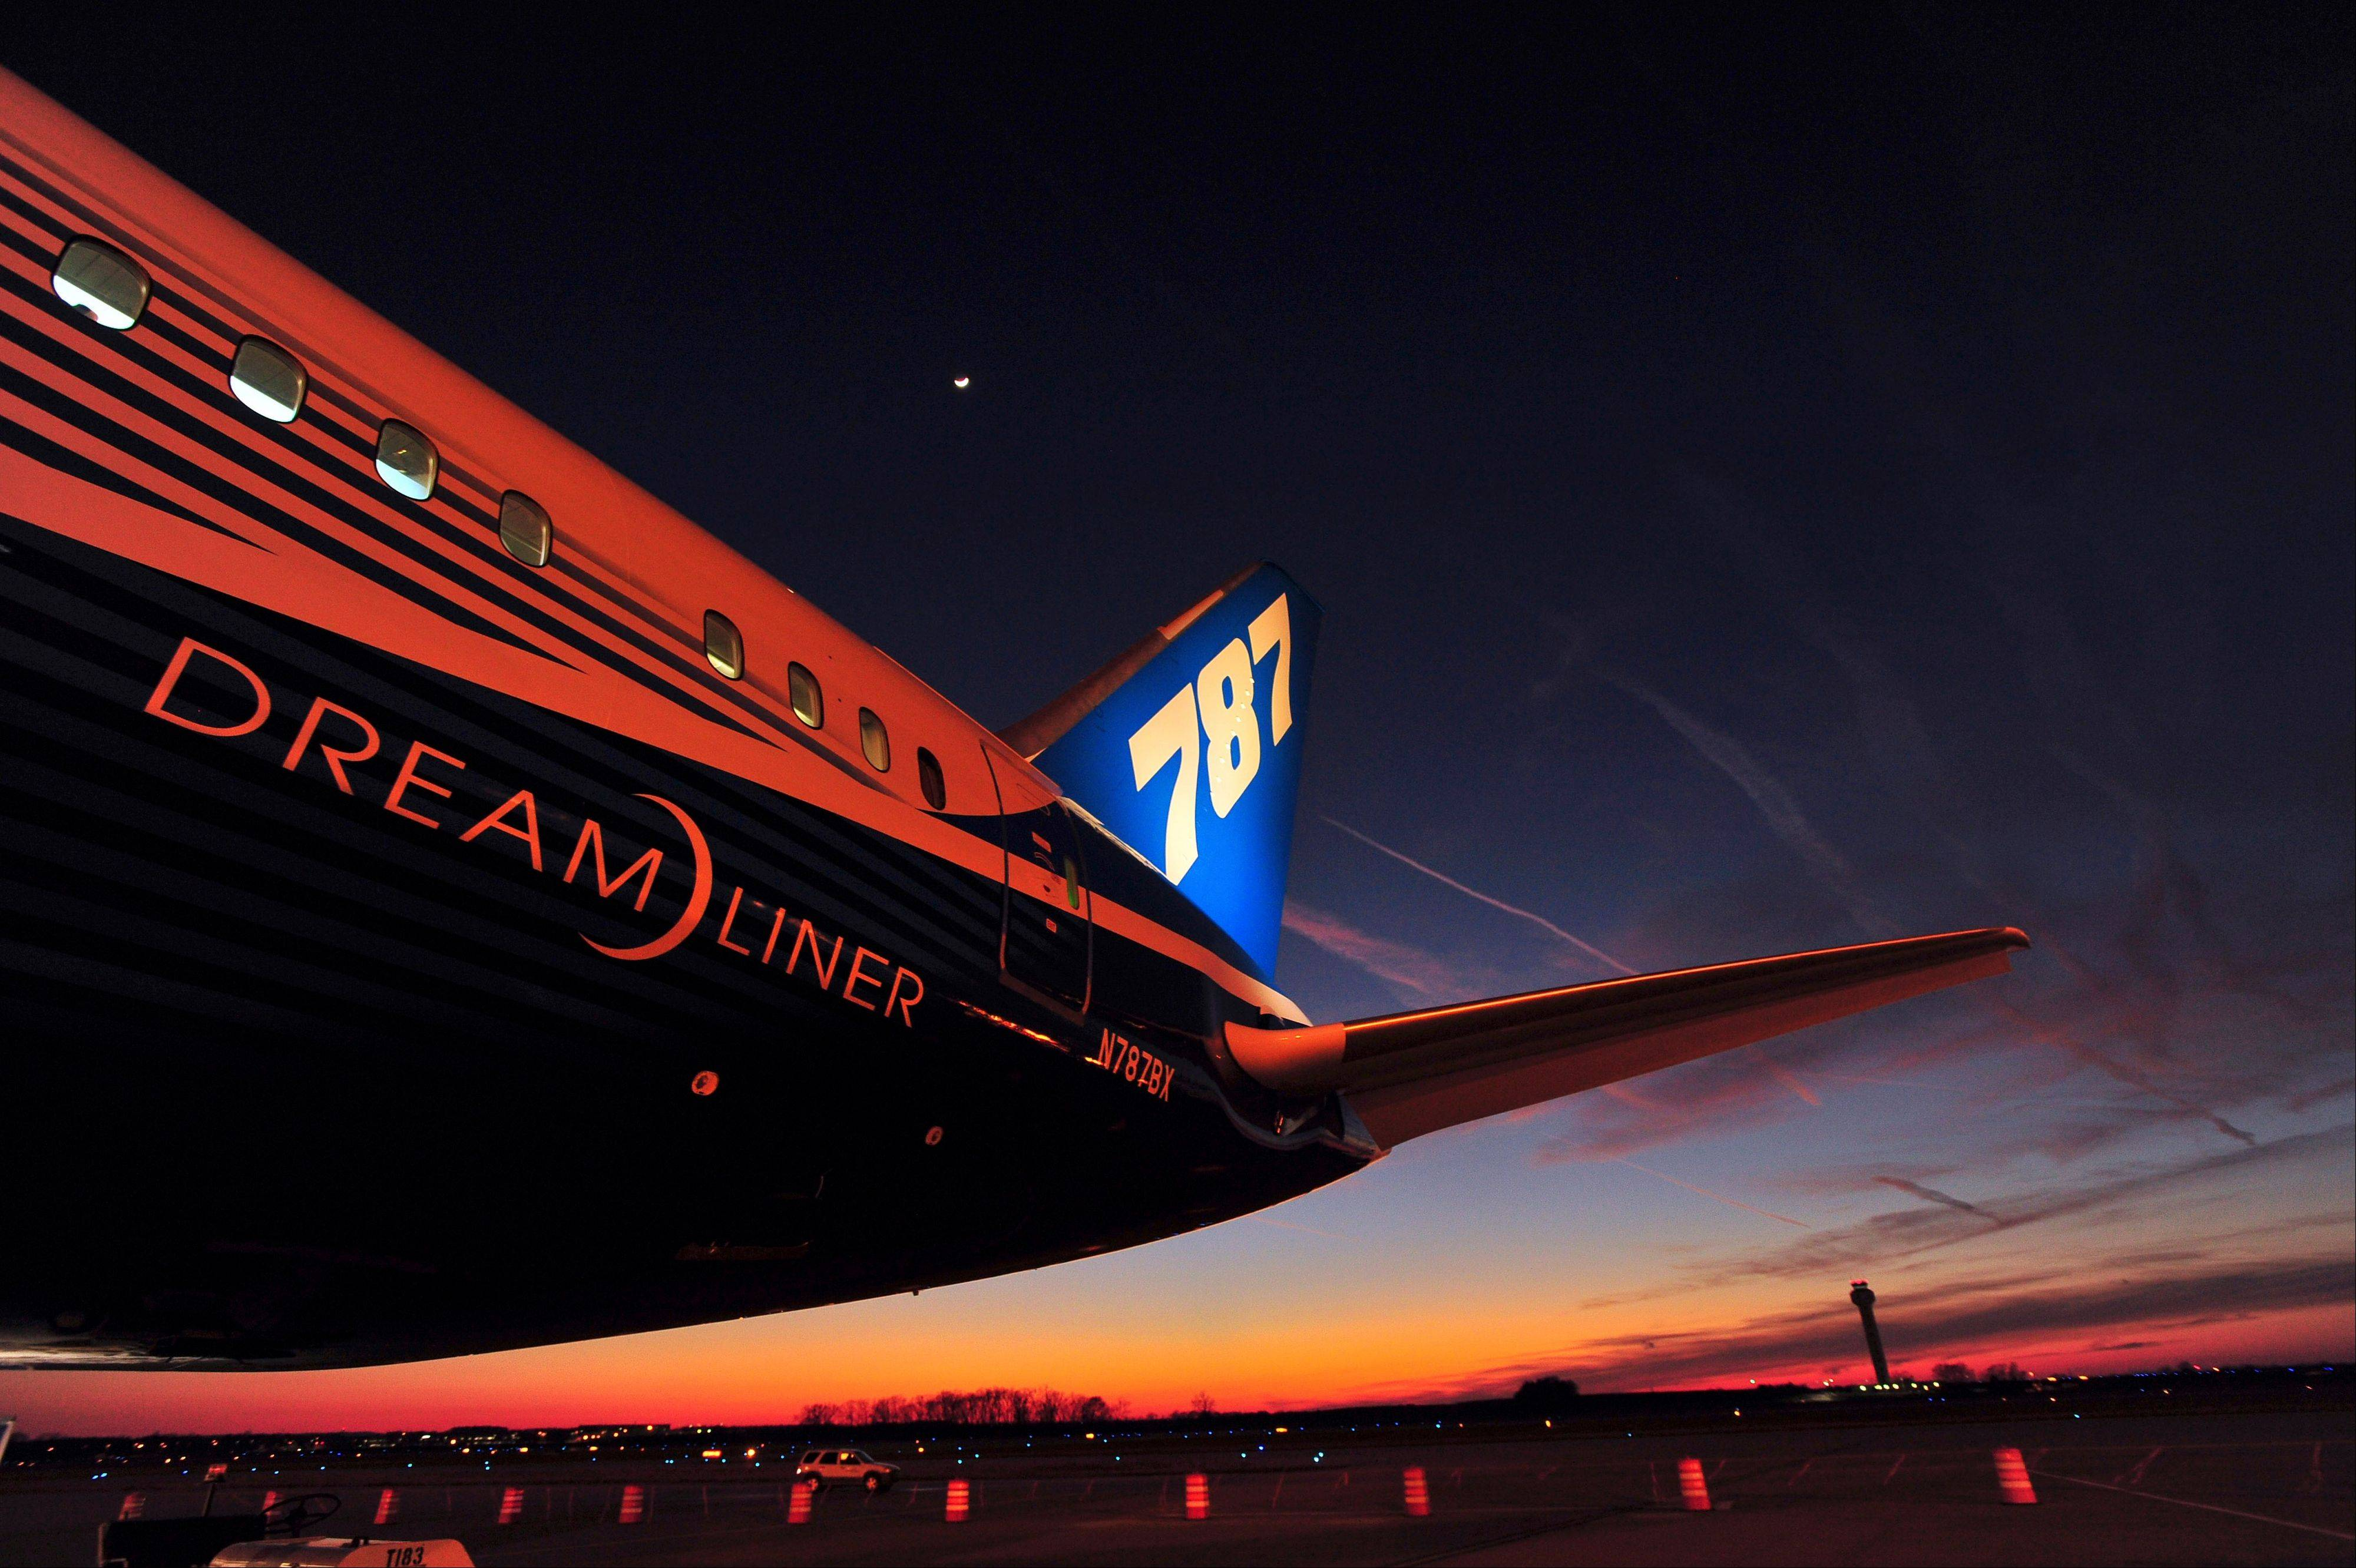 Boeing's newest aircraft, the Boeing 787, sits on the tarmac at Huntsville International Airport after a 3,600-mile flight from Dublin, in Huntsville, Ala. Boeing executives insisted Wednesday its 787 Dreamliner is safe.